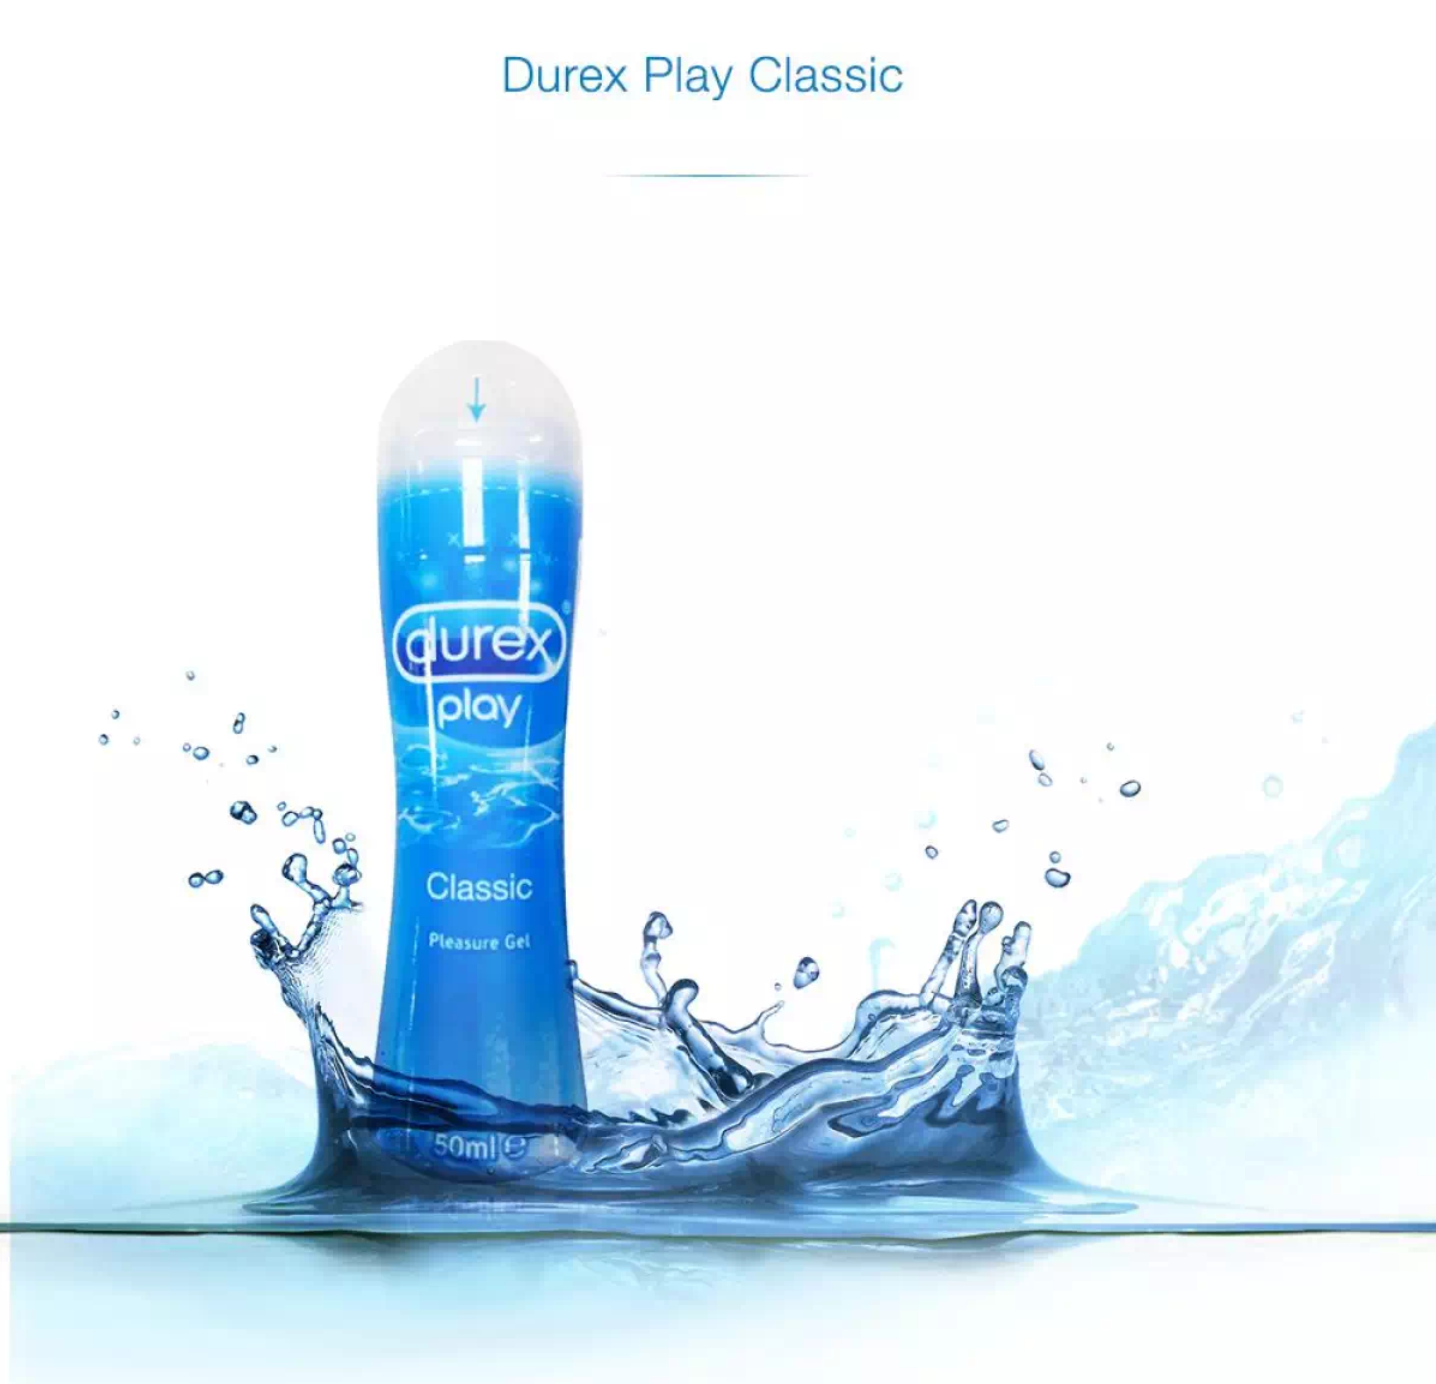 1589111729_durex-play-o-classic-50ml.jpg